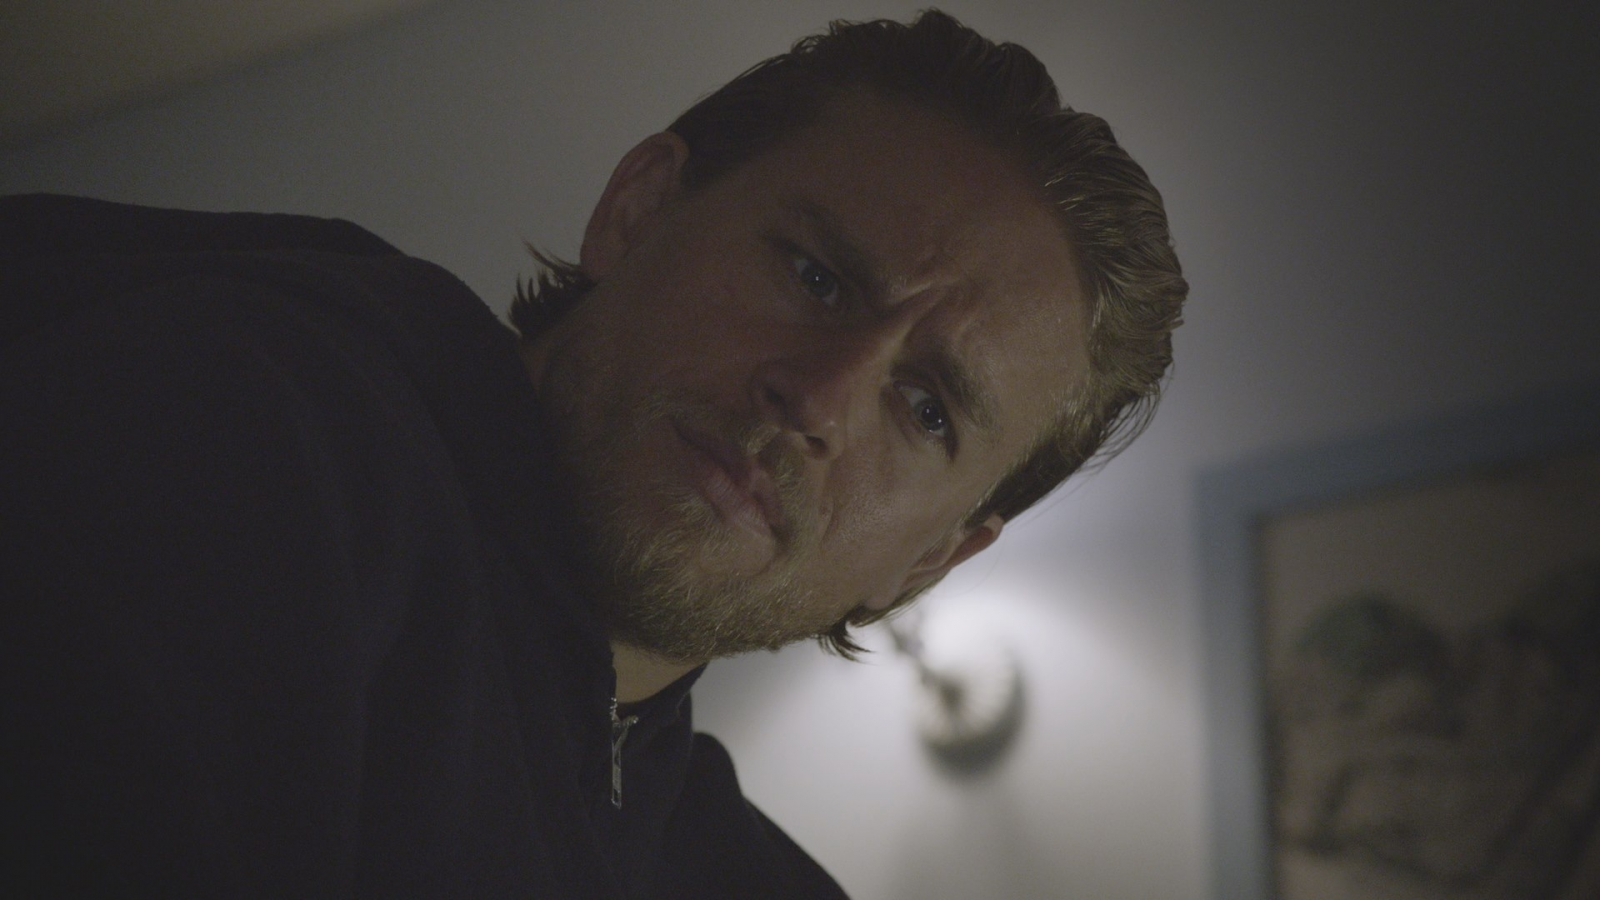 Sons of Anarchy Season 7 Spoilers: How Jax will React to Abel's Innocent Reveal About Gemma's Ugly Truth